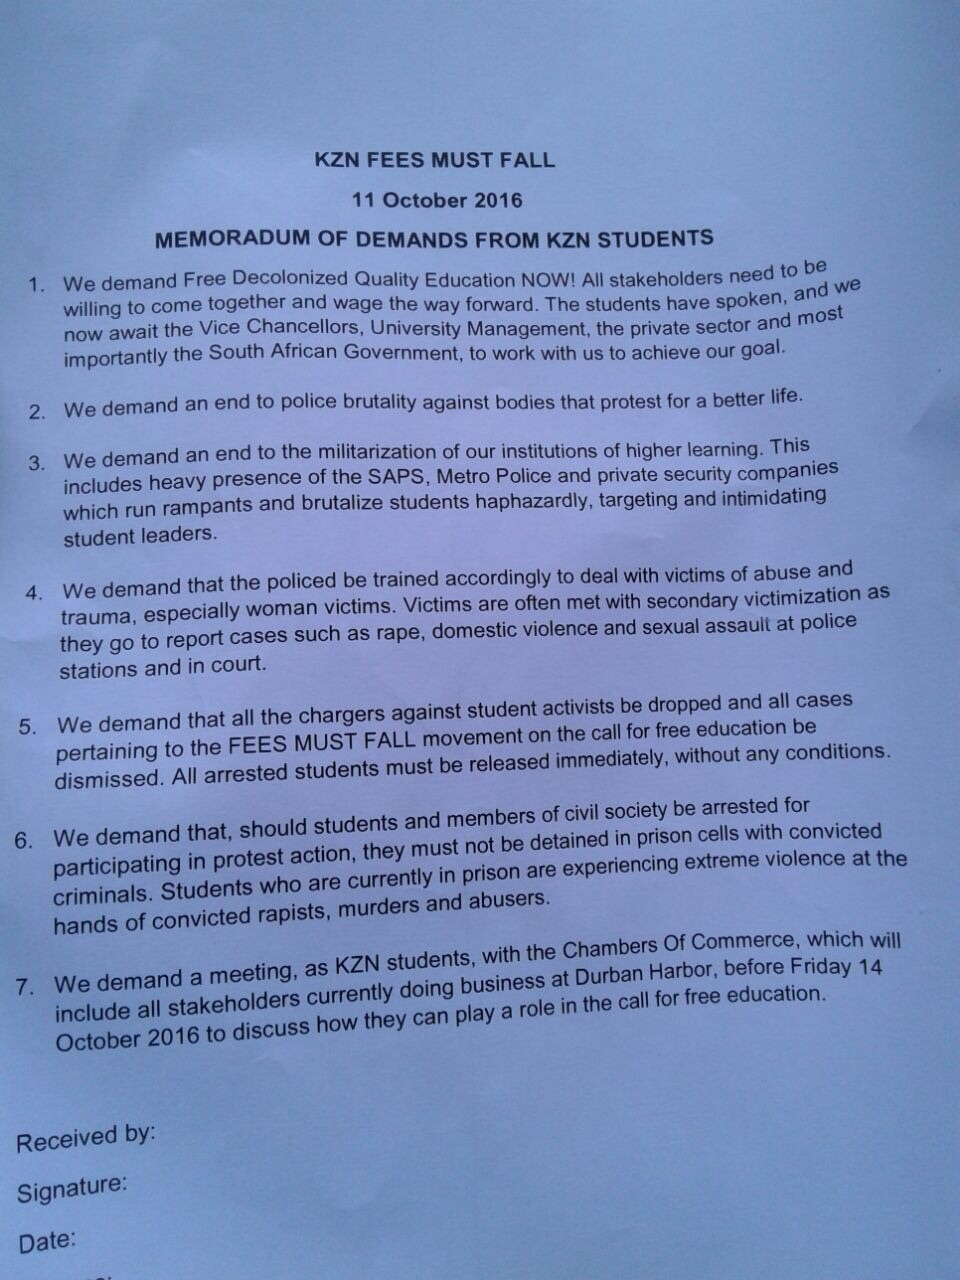 Memorandum of student demands handed to Chamber of Commerce. #KZNFMF